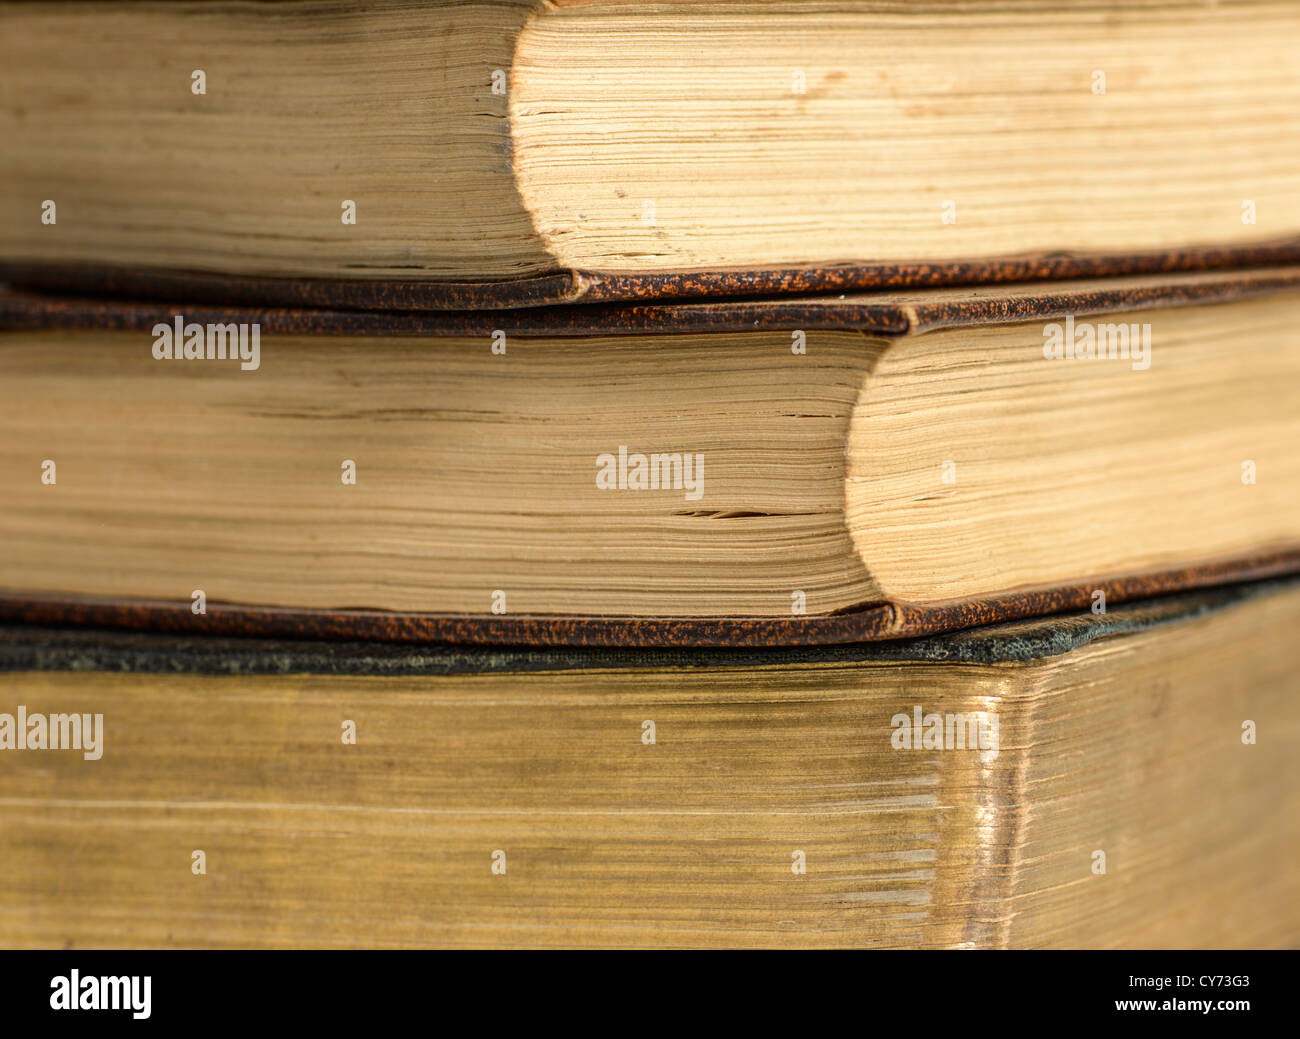 A stack pile of three antique vintage old books showing signs of wear and tear anonymous anontmised anonymized Stock Photo